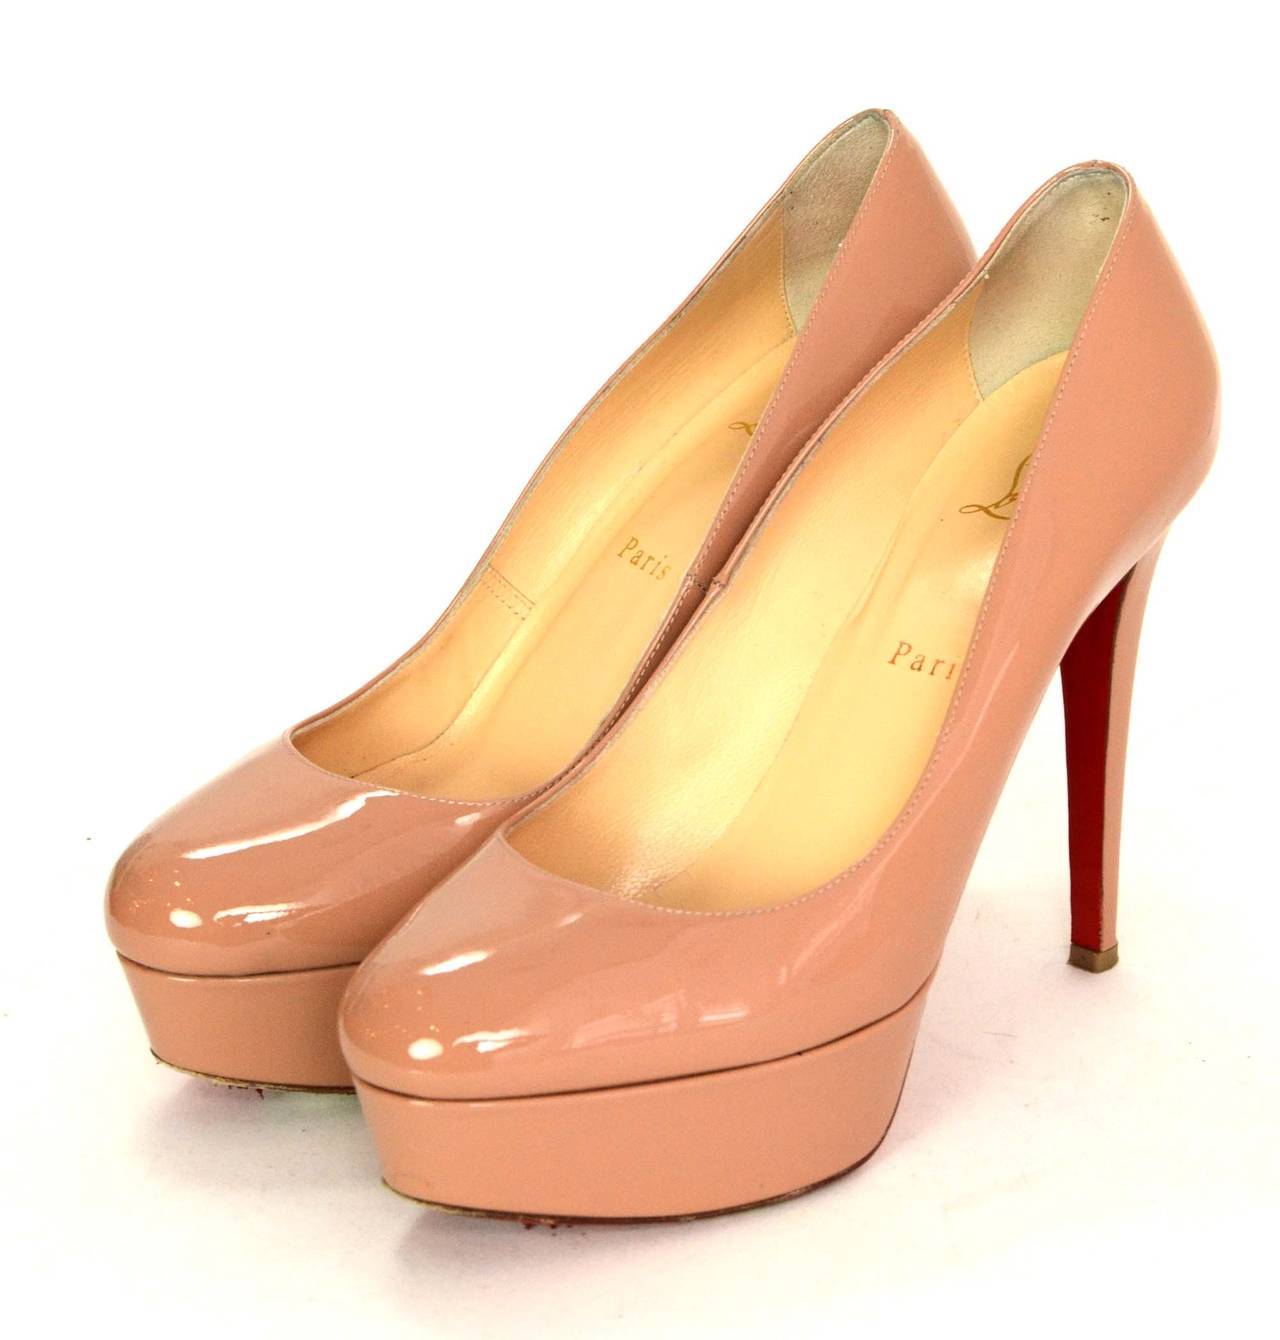 f08cab200b67 Christian Louboutin Nude Patent Bianca Platform Pumps Made in  Italy Color   Nude Composition